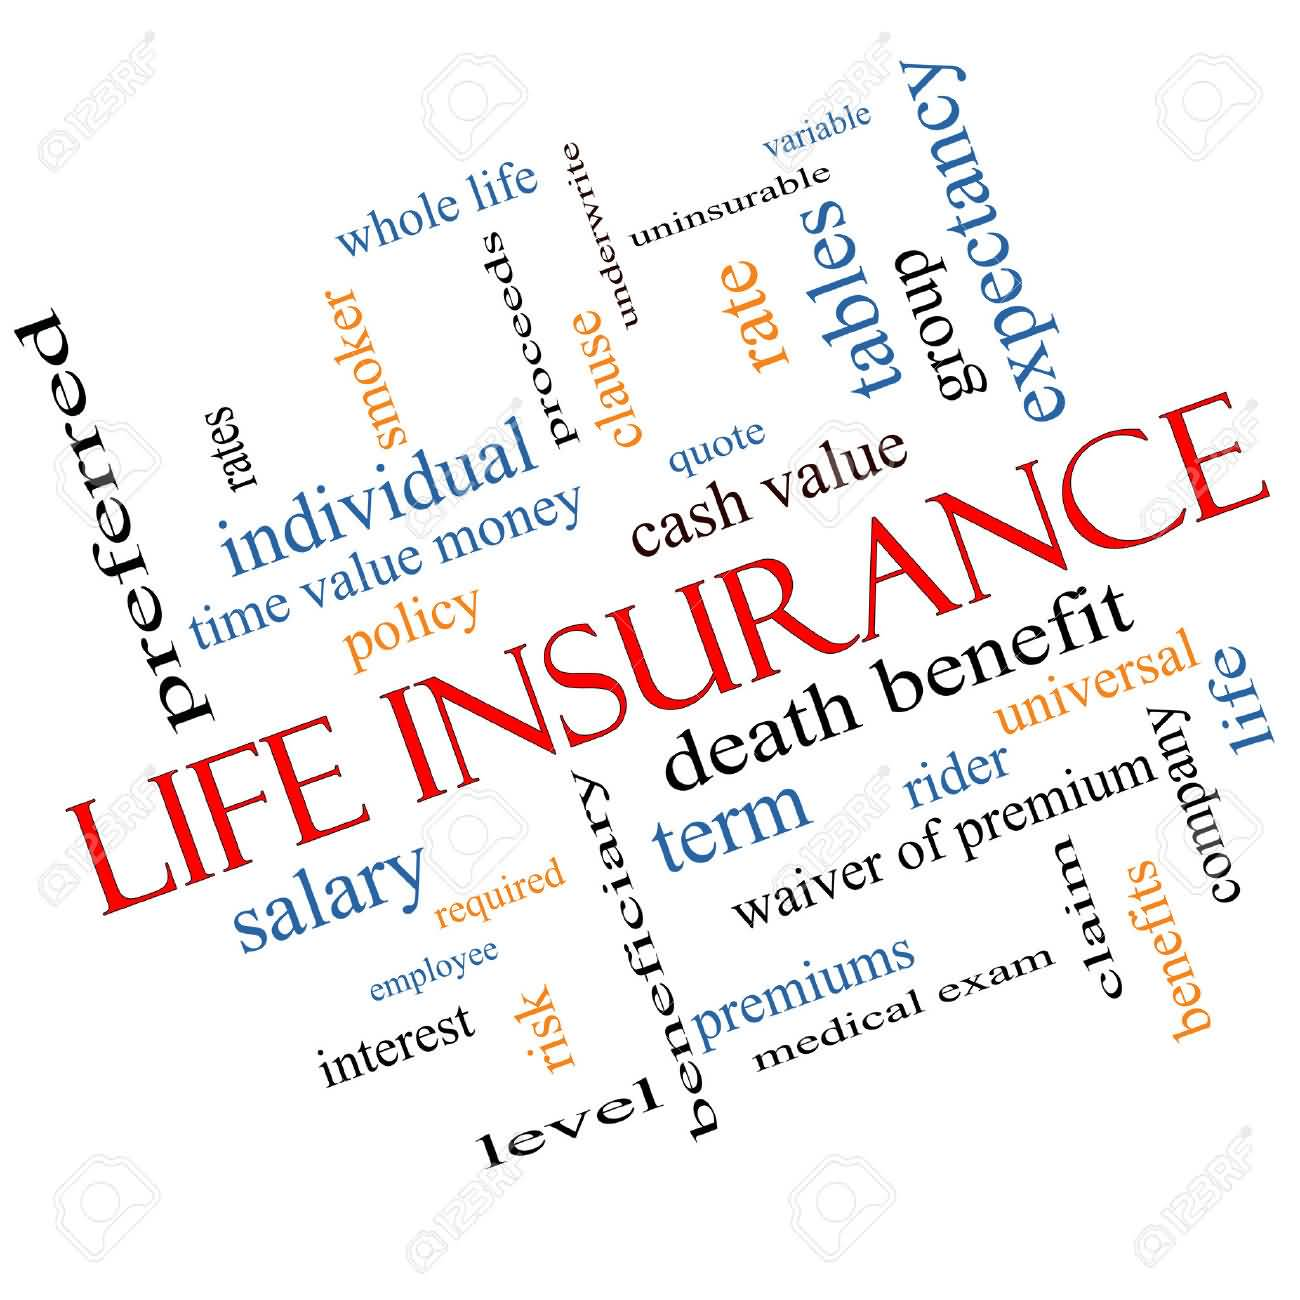 Life Insurance Quotes Whole Life: 20 Quote For Whole Life Insurance Pics And Photos